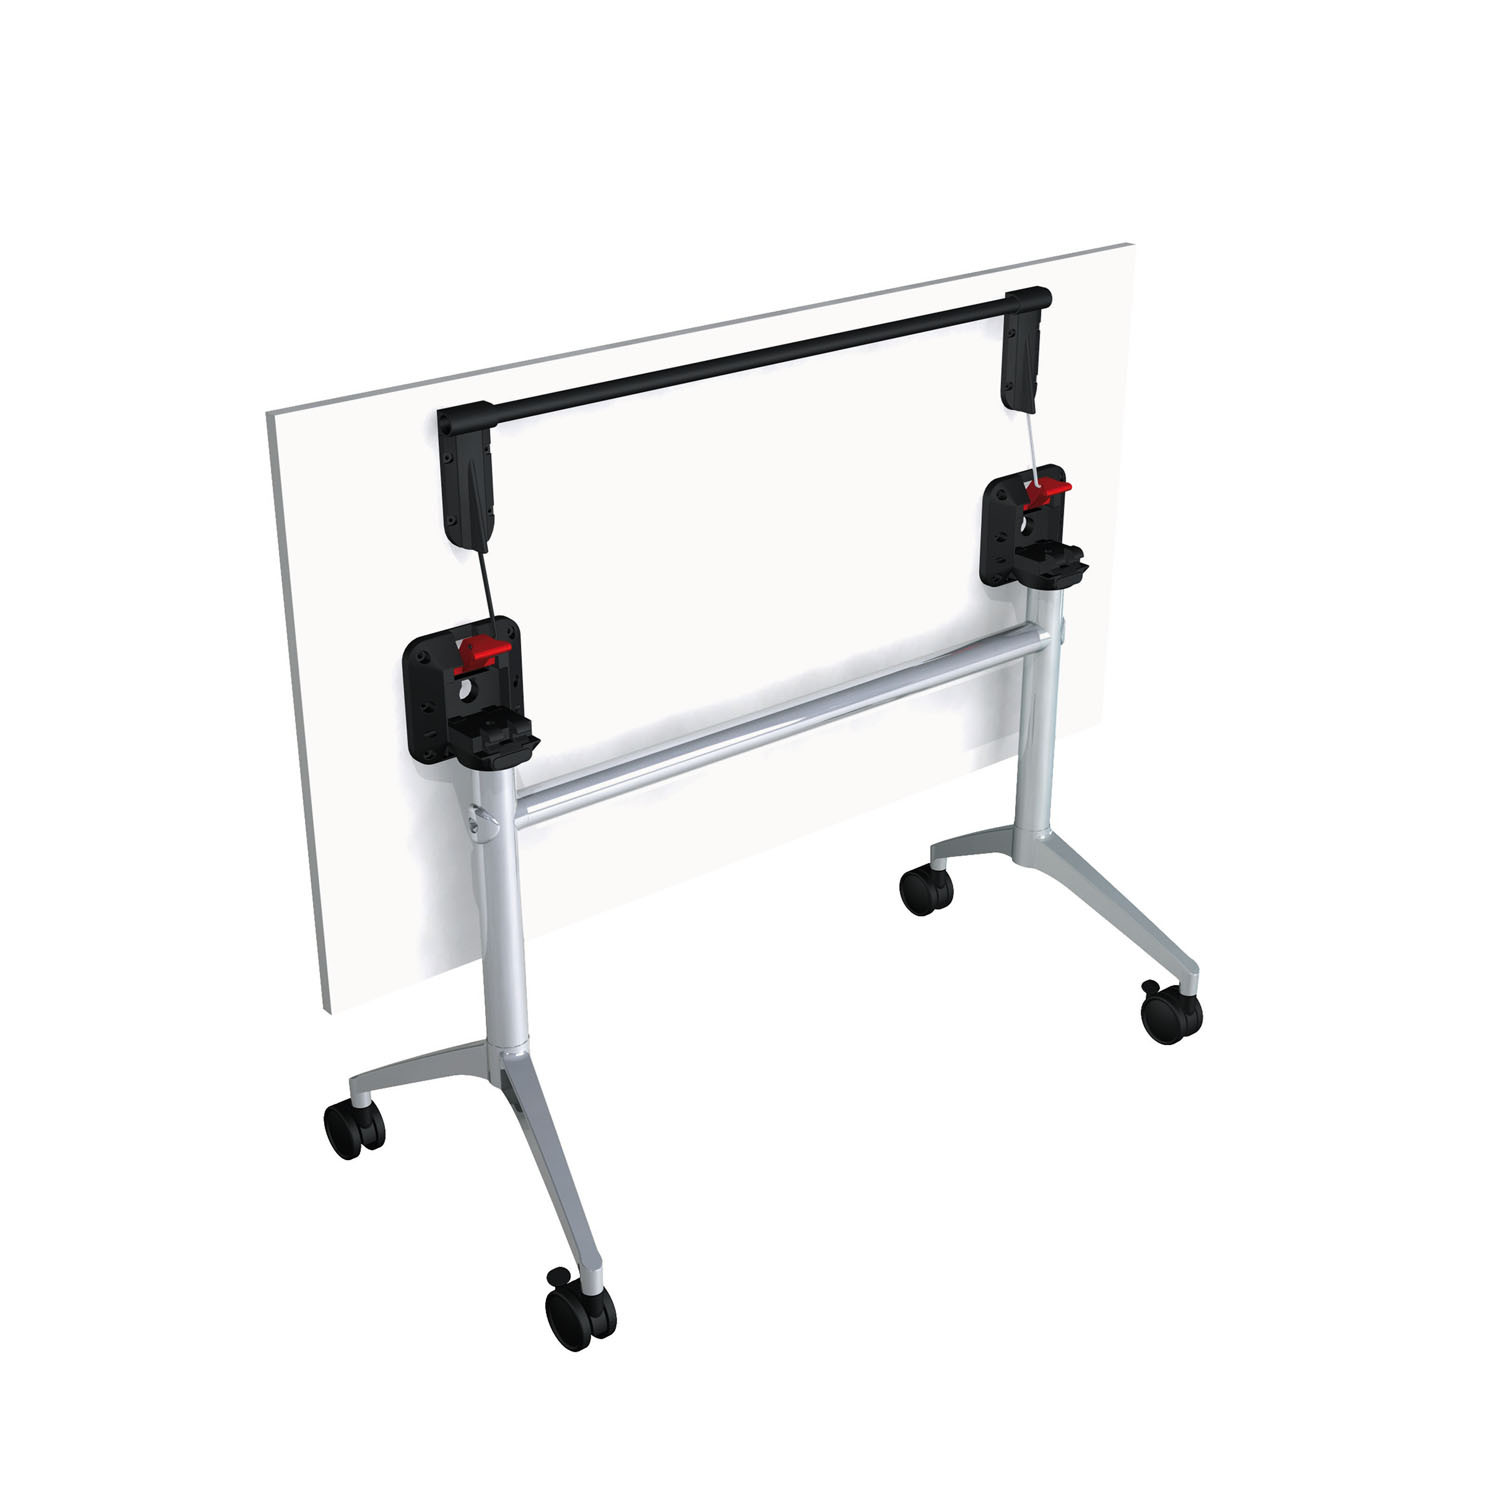 Where Is The Co U R: Folding Meeting Tables